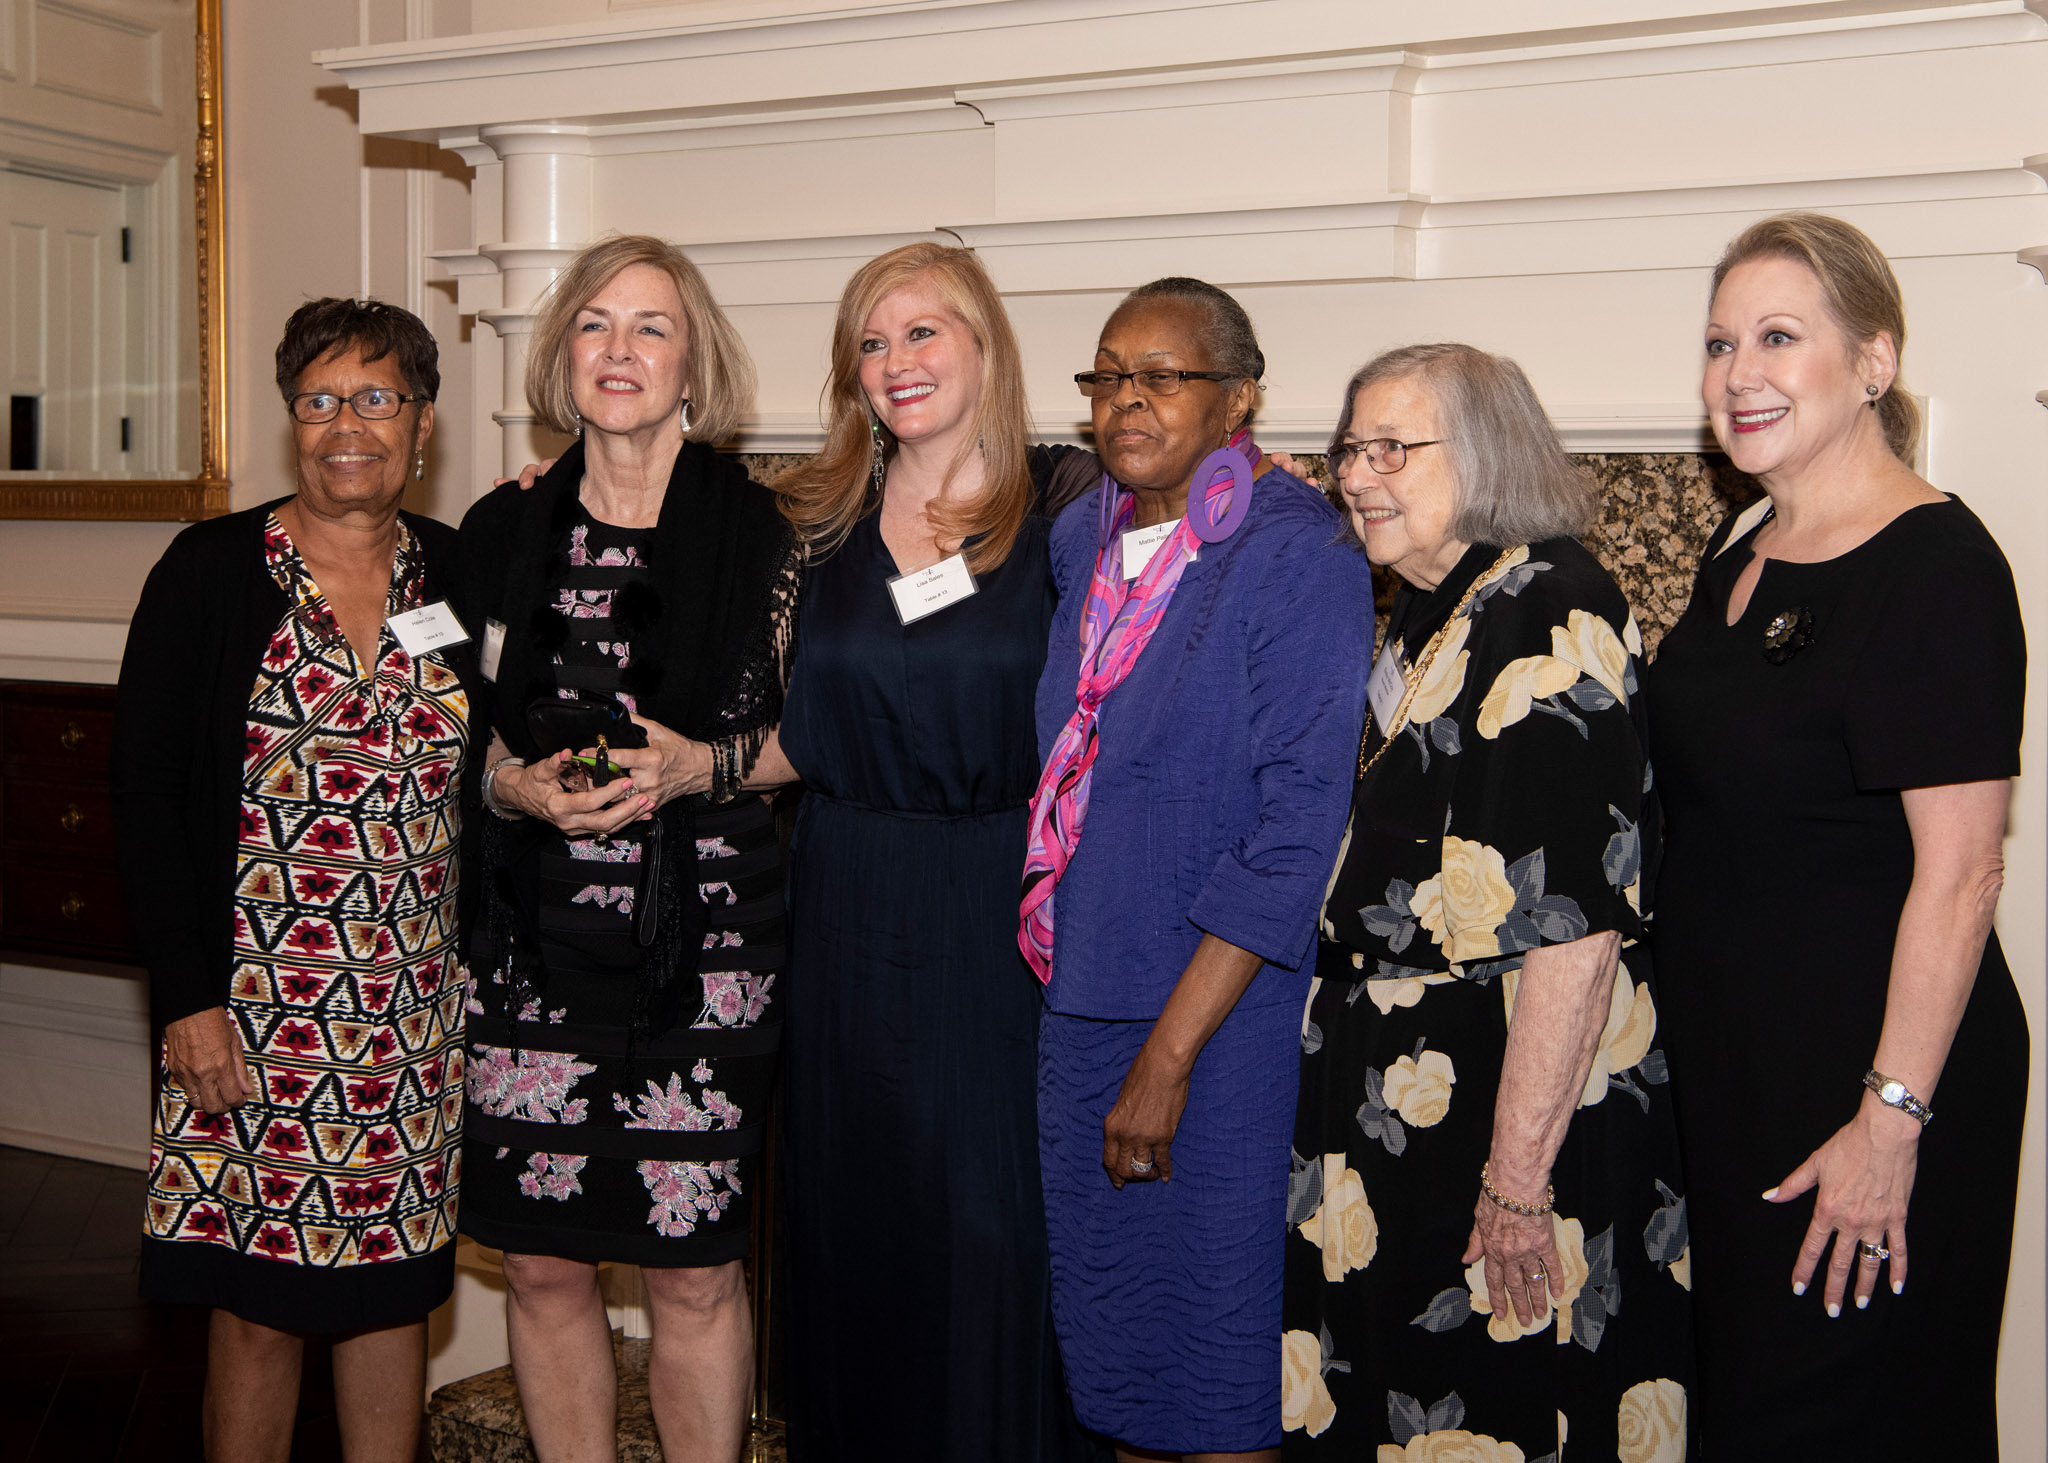 Partner-Fairfax-County-Commission-for-Women-Helen-Colen-Nancy-Hopkins-Lisa-Sales-Mattie-Palmore-Emily-McCoy-Sondra-Hemenway